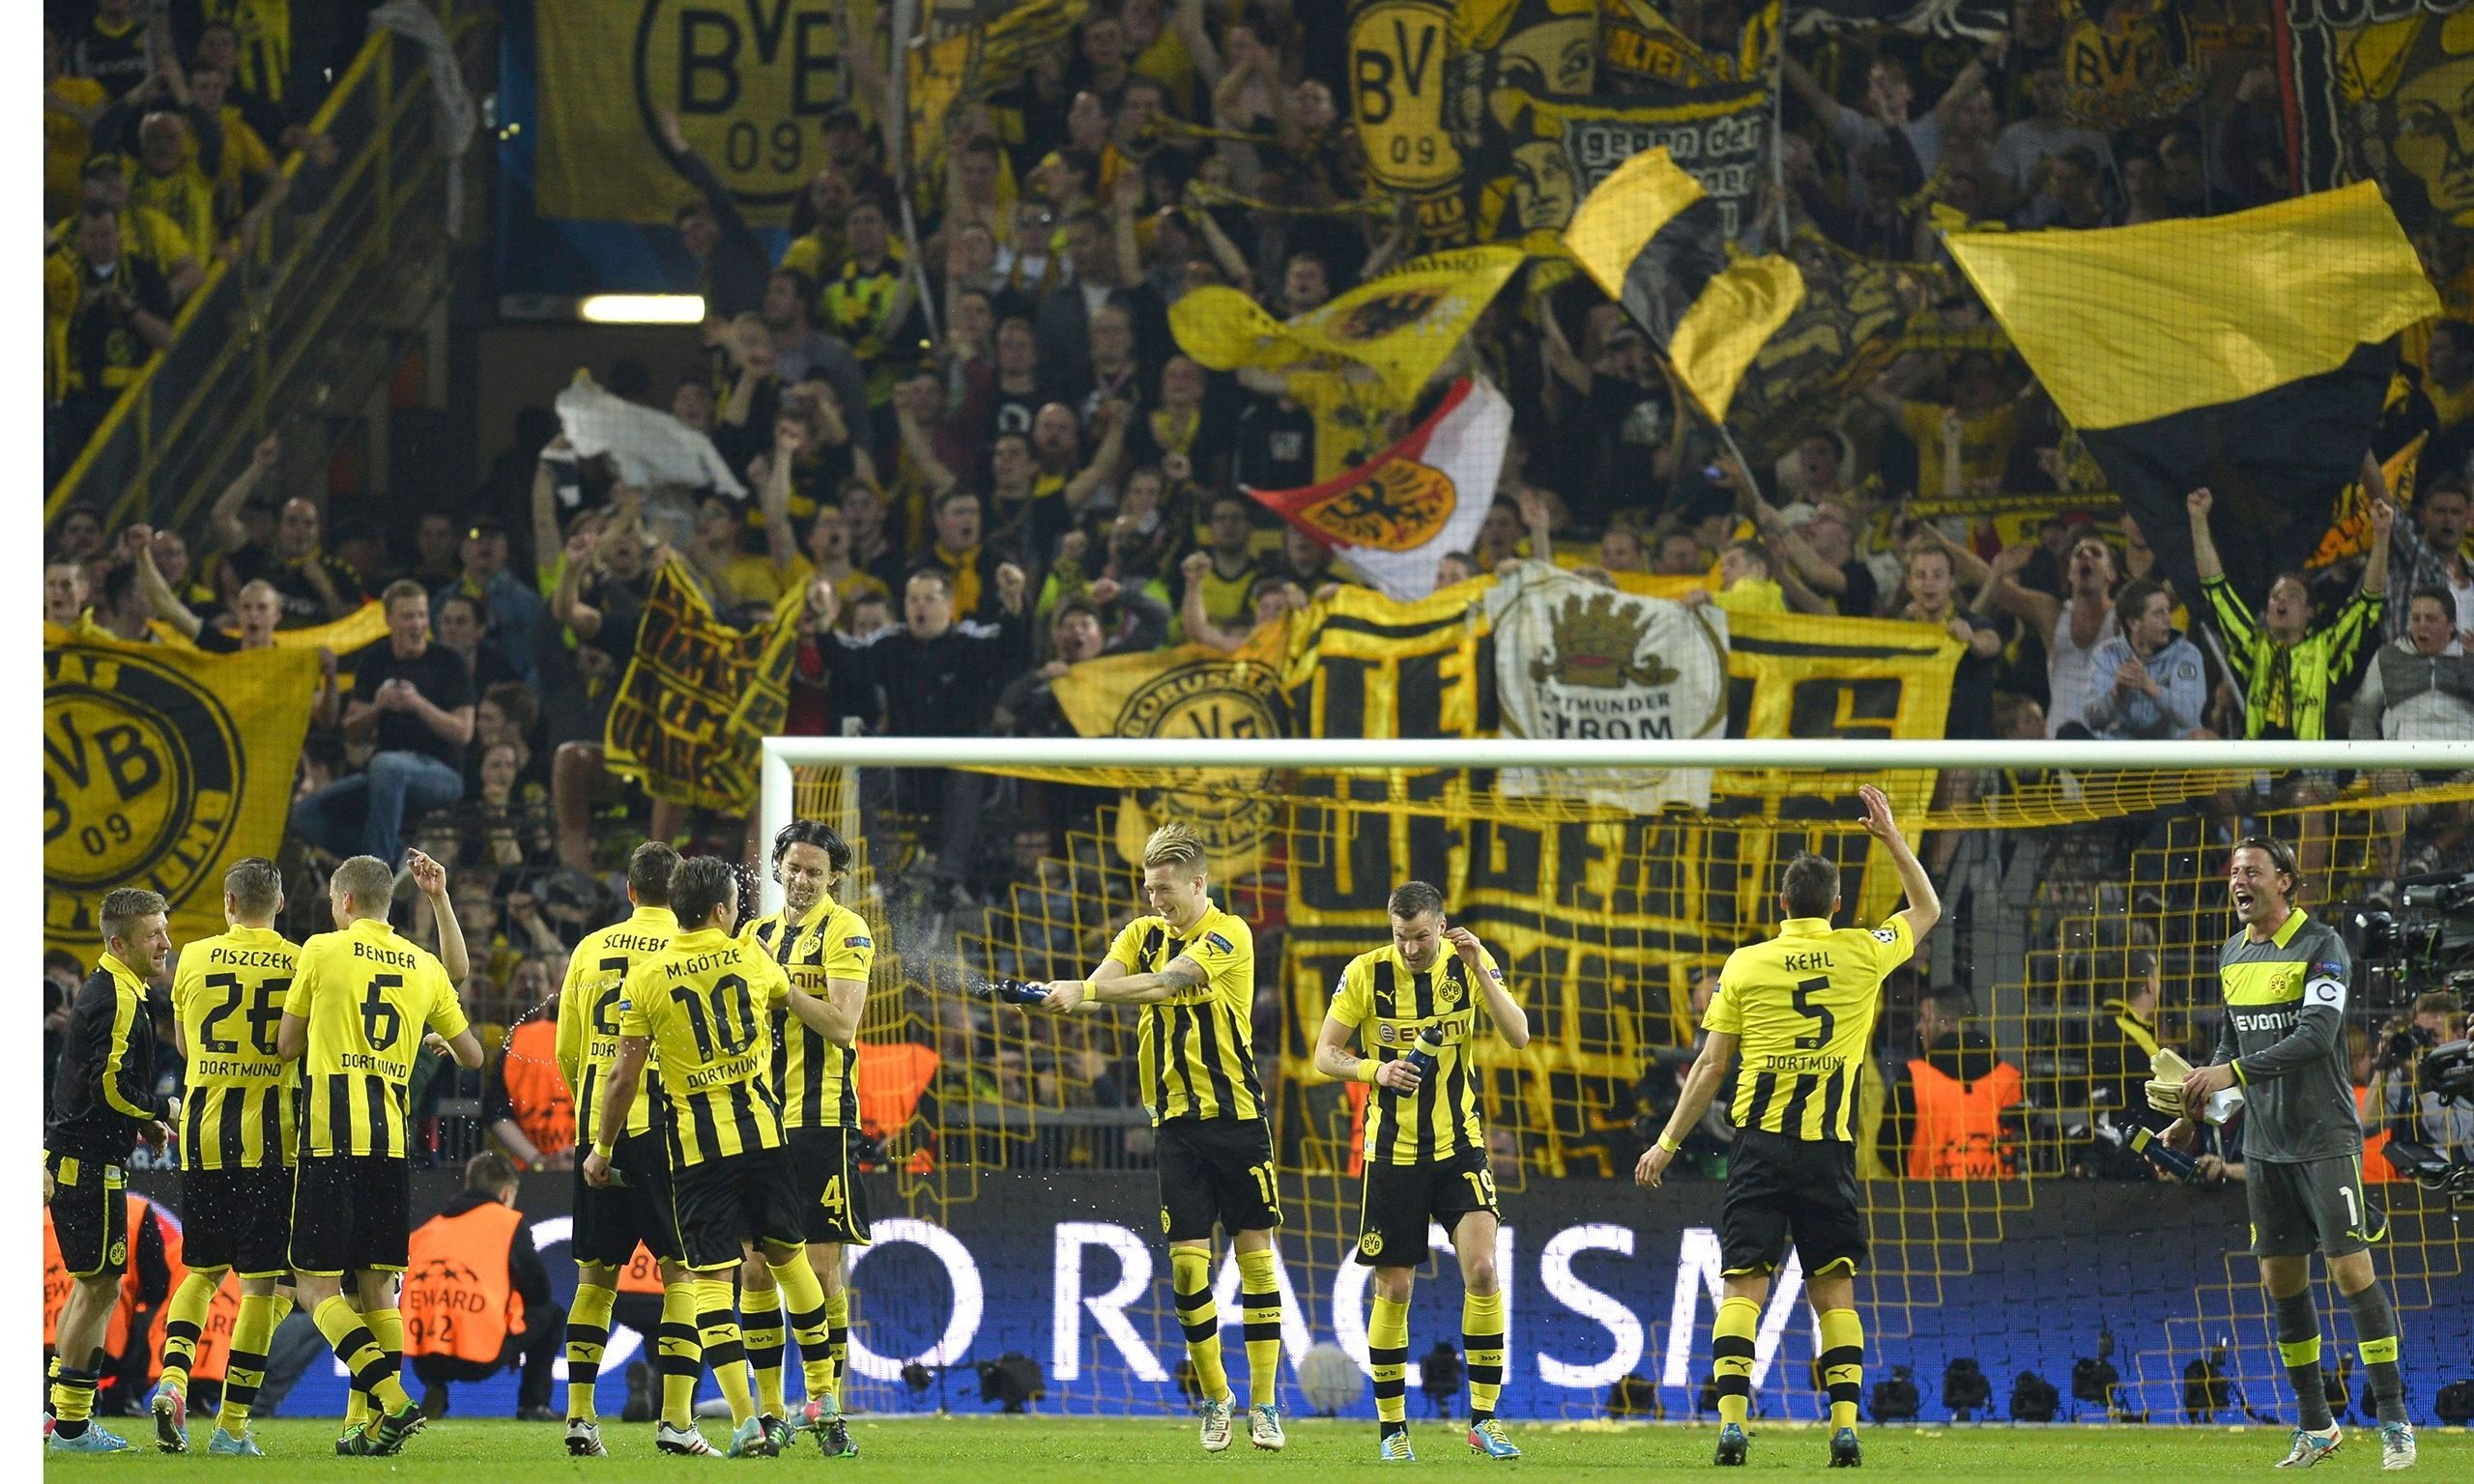 Dortmund players and fans celebrate the 4-1 Champions League win against Real Madrid in April.